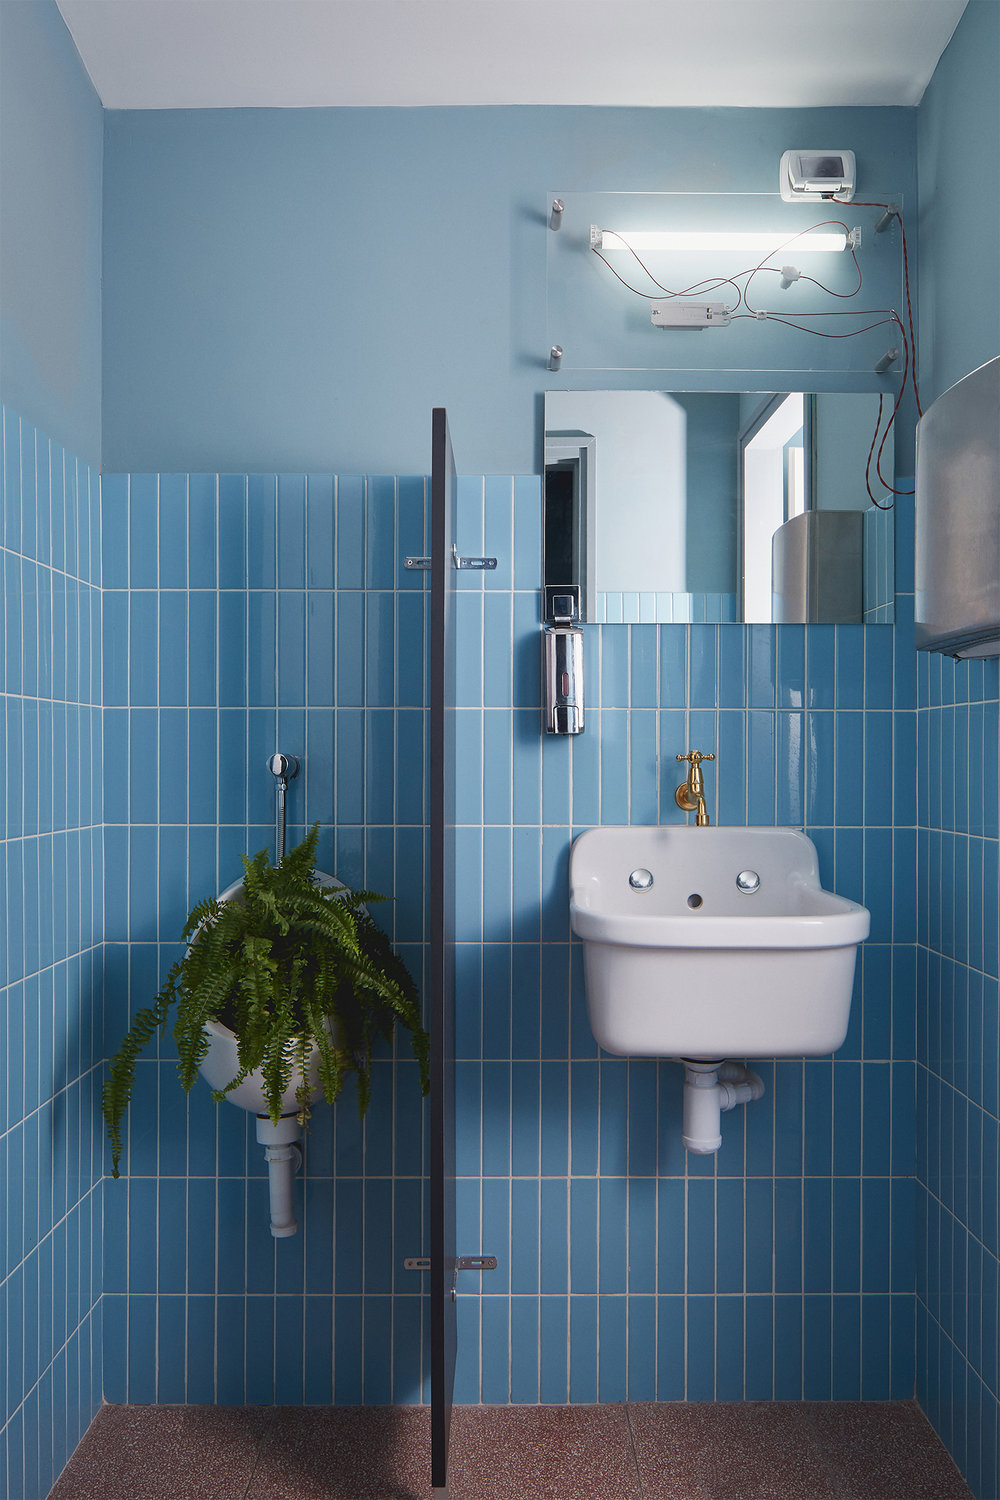 restaurants toilets with red terrazzo floor and light blue tiles. perspex light object